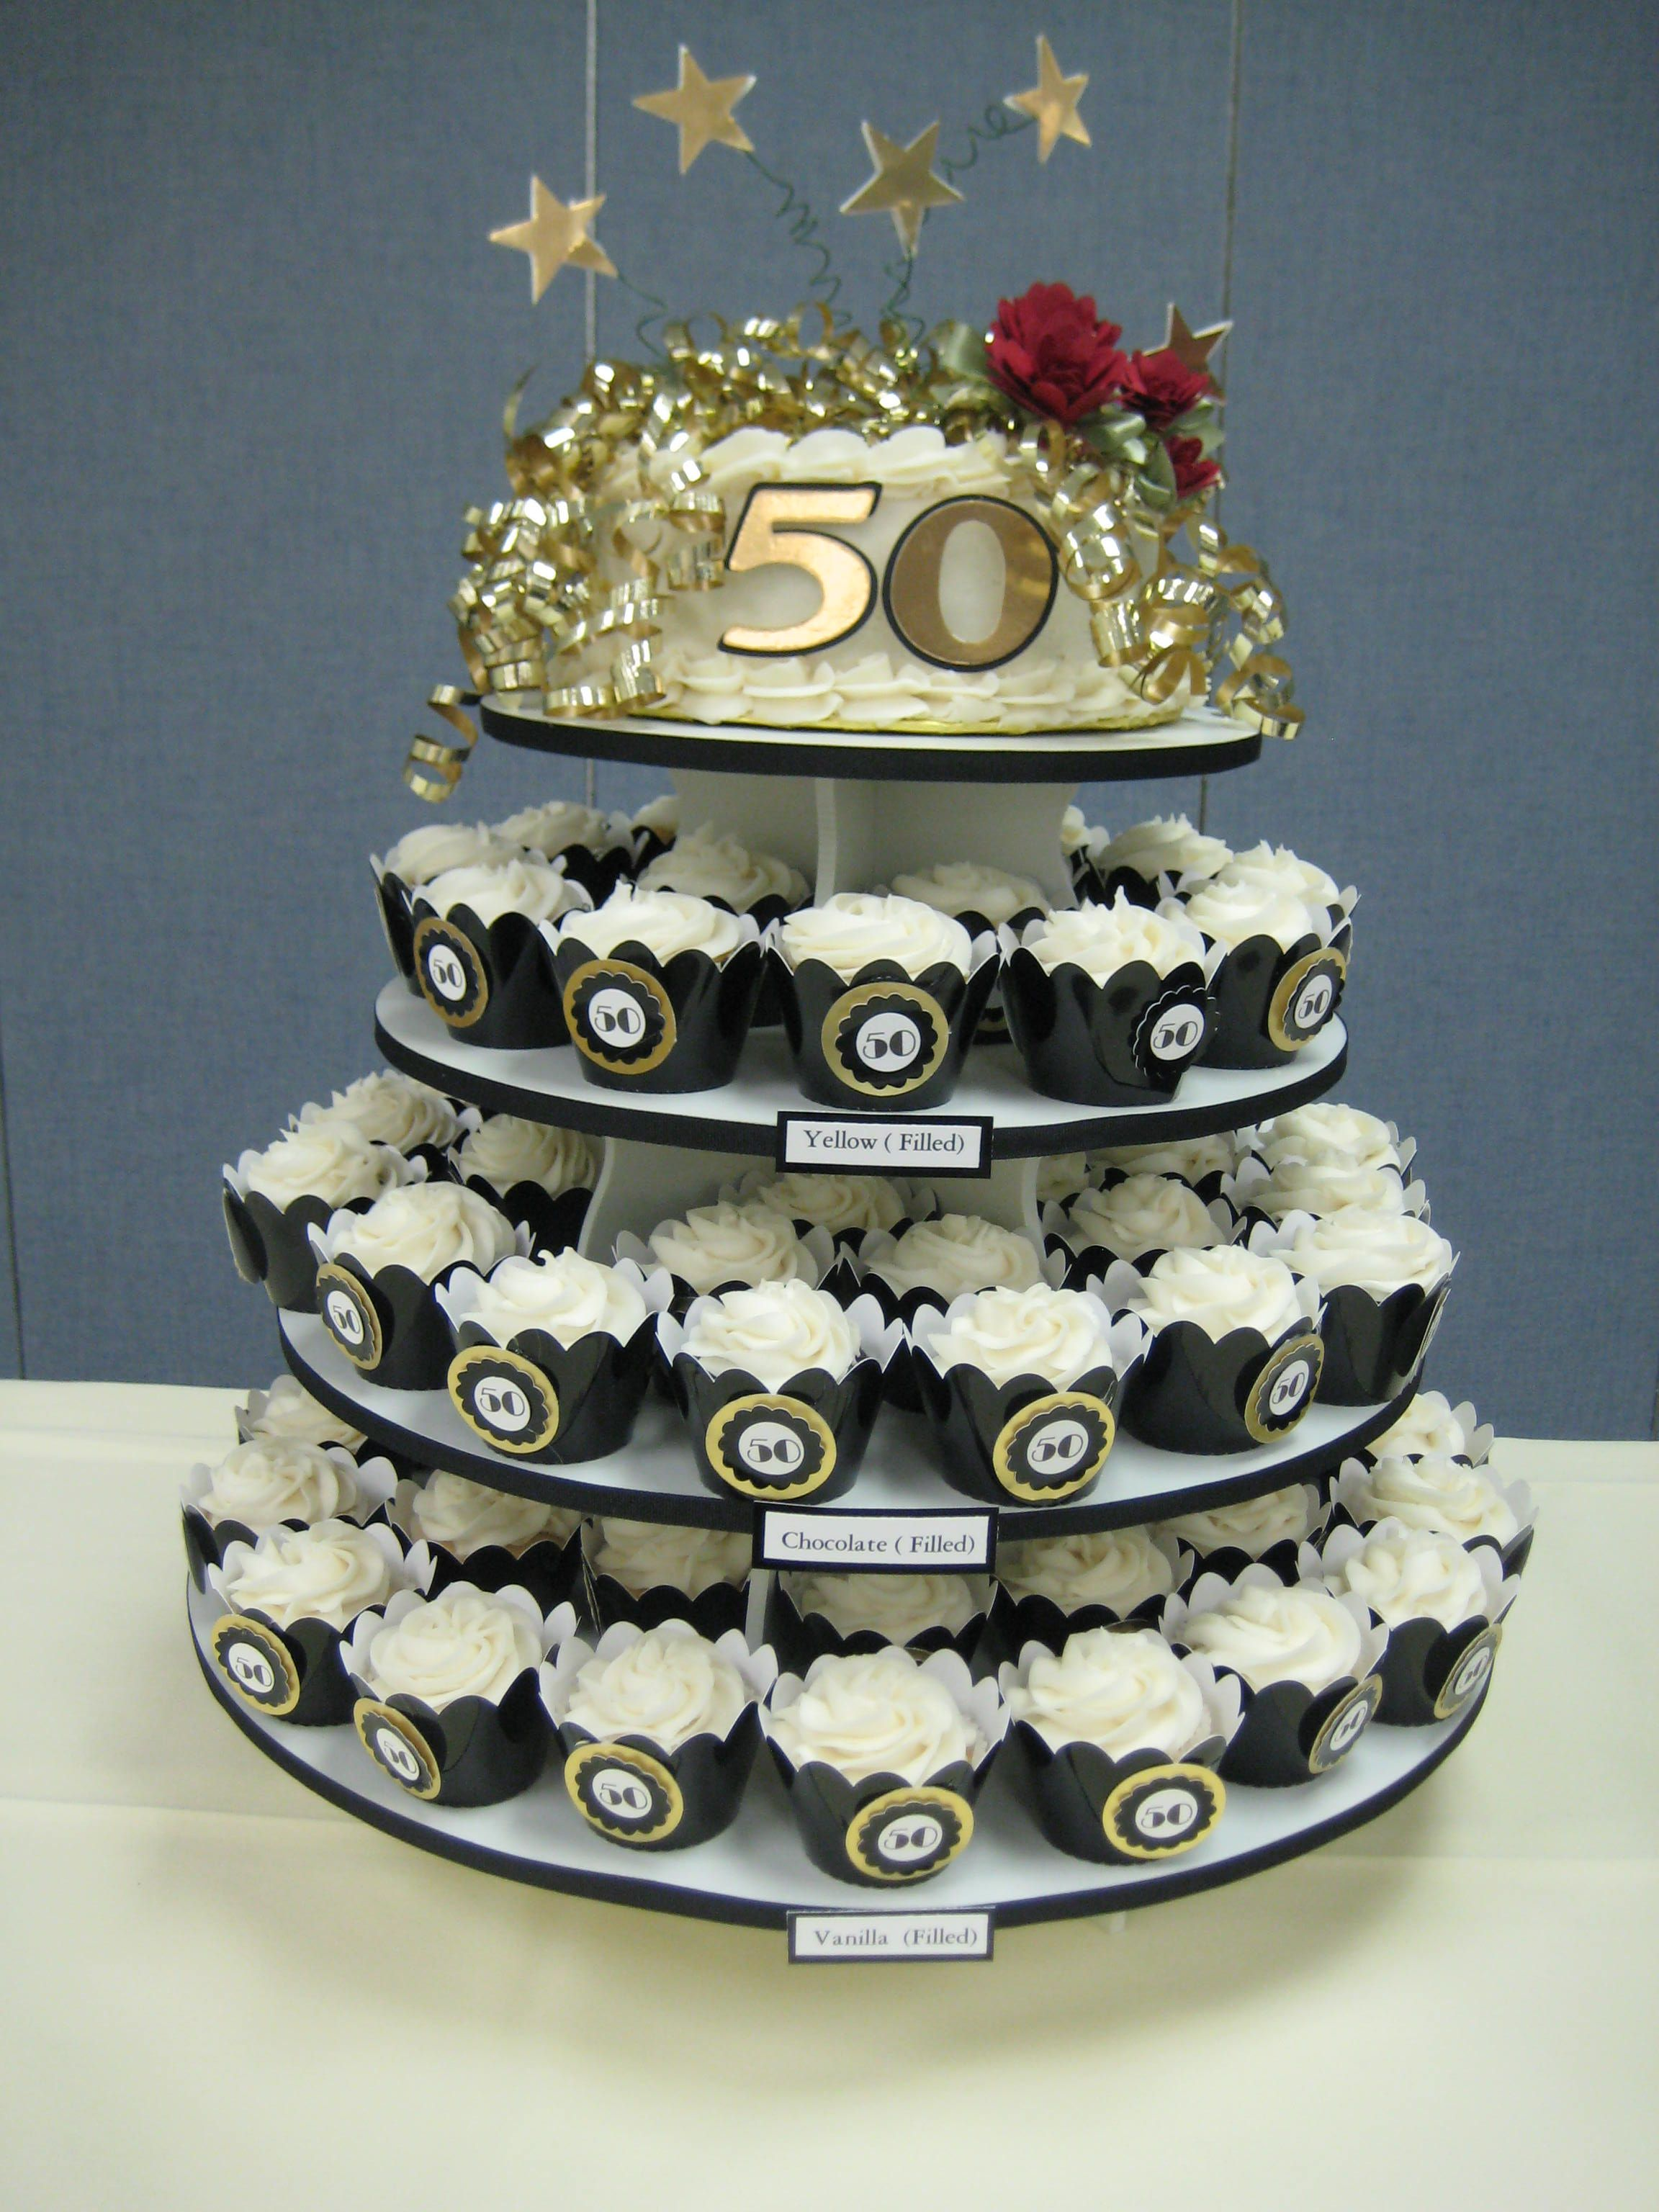 50th Anniversary Cupcake Decorations 50th Anniversary Cupcake Tower My Mini Cupcakes By Denise